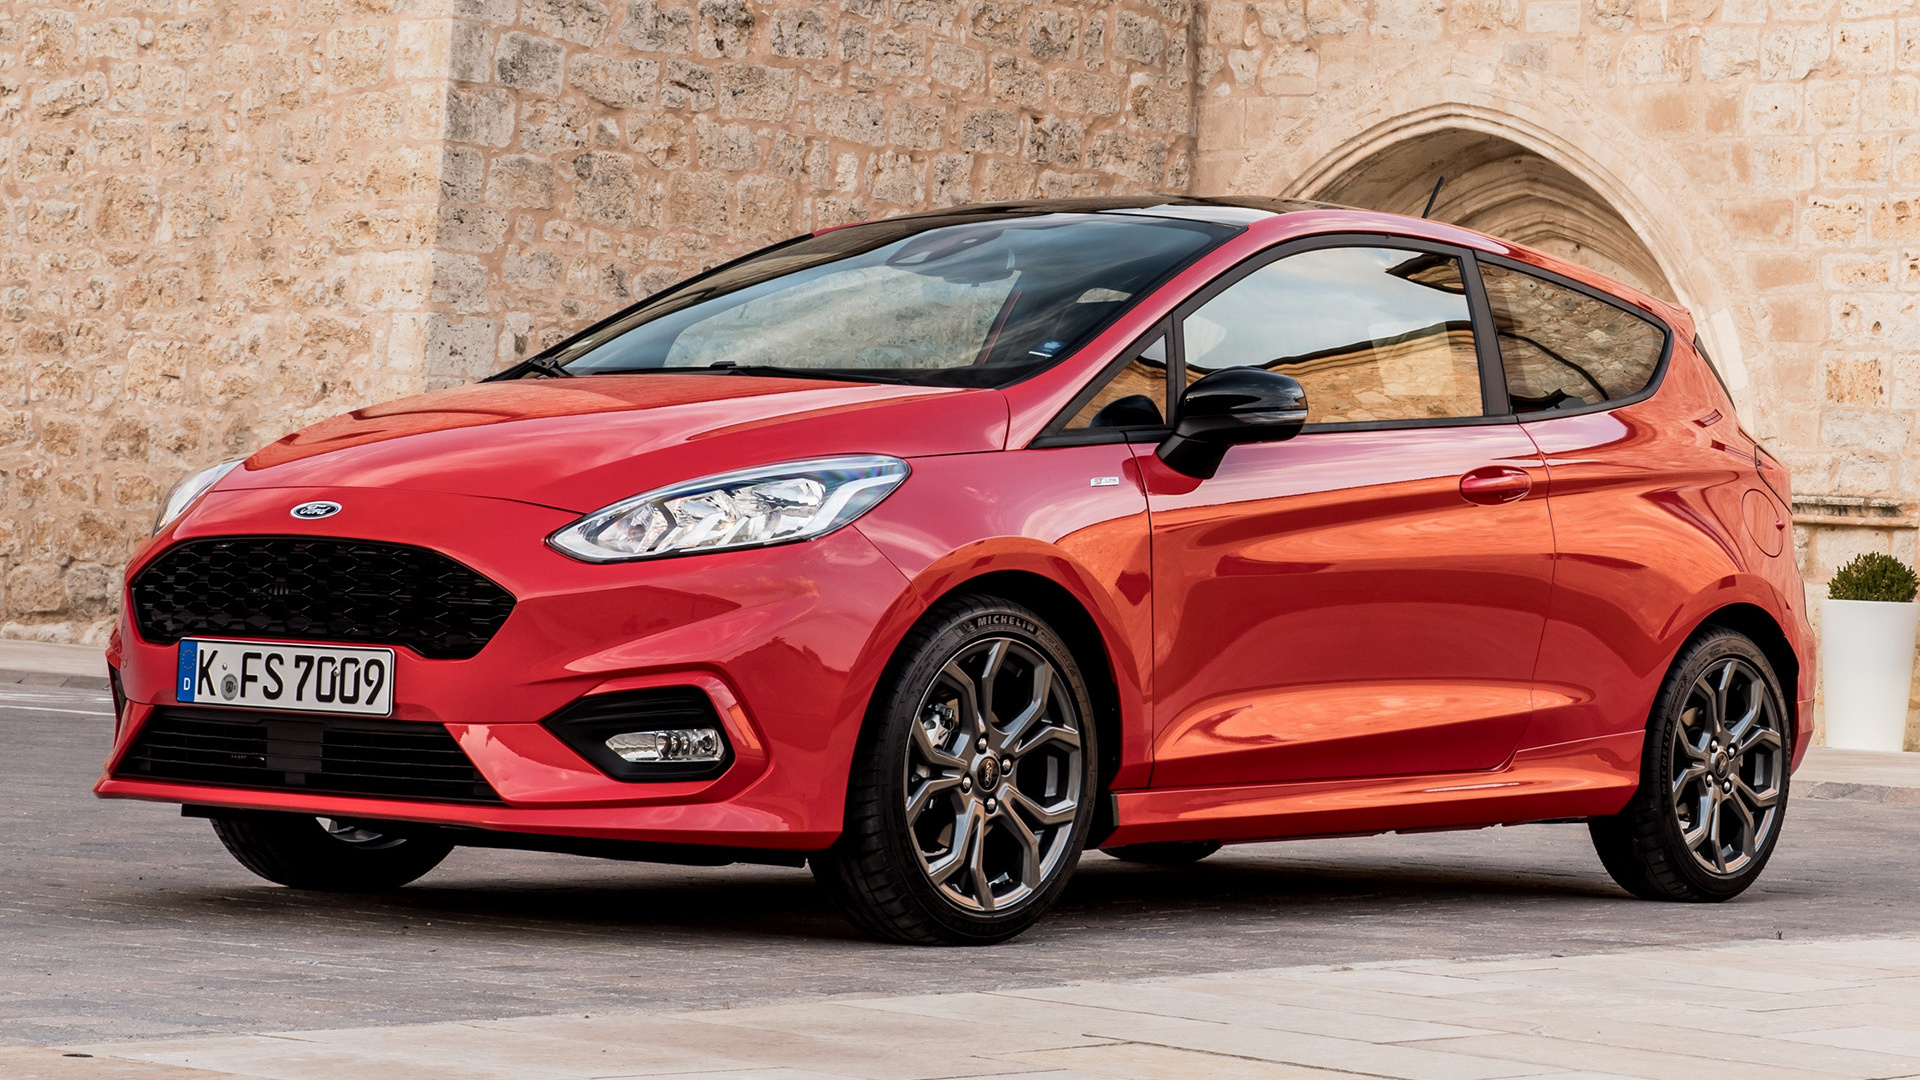 2017 ford fiesta st line 3 door wallpapers and hd images. Black Bedroom Furniture Sets. Home Design Ideas